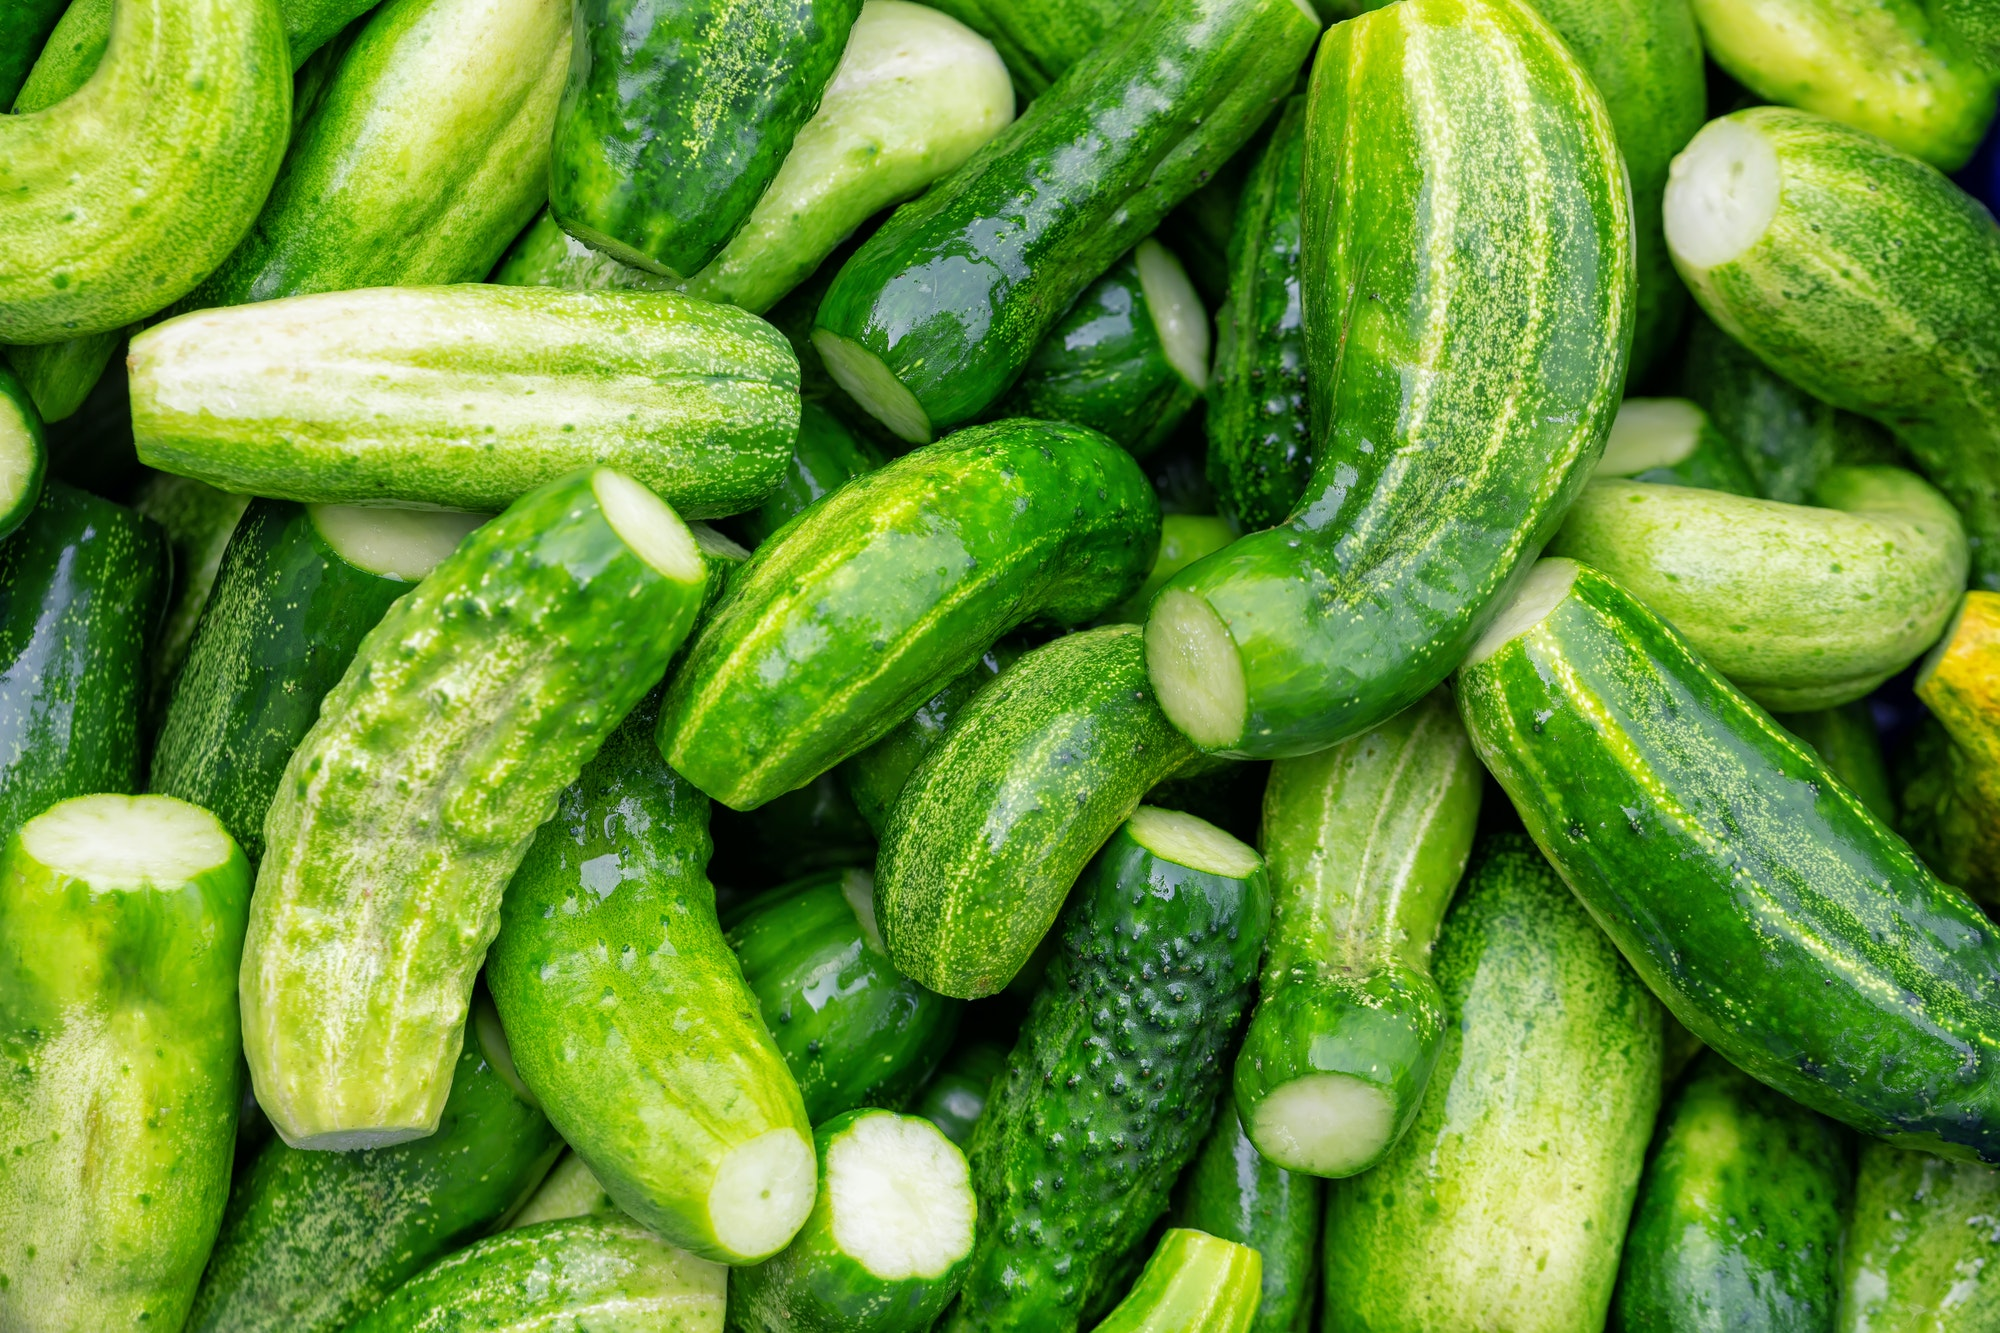 Indoor Growers World - Growing Cucumbers Indoors Takes Lots of Light